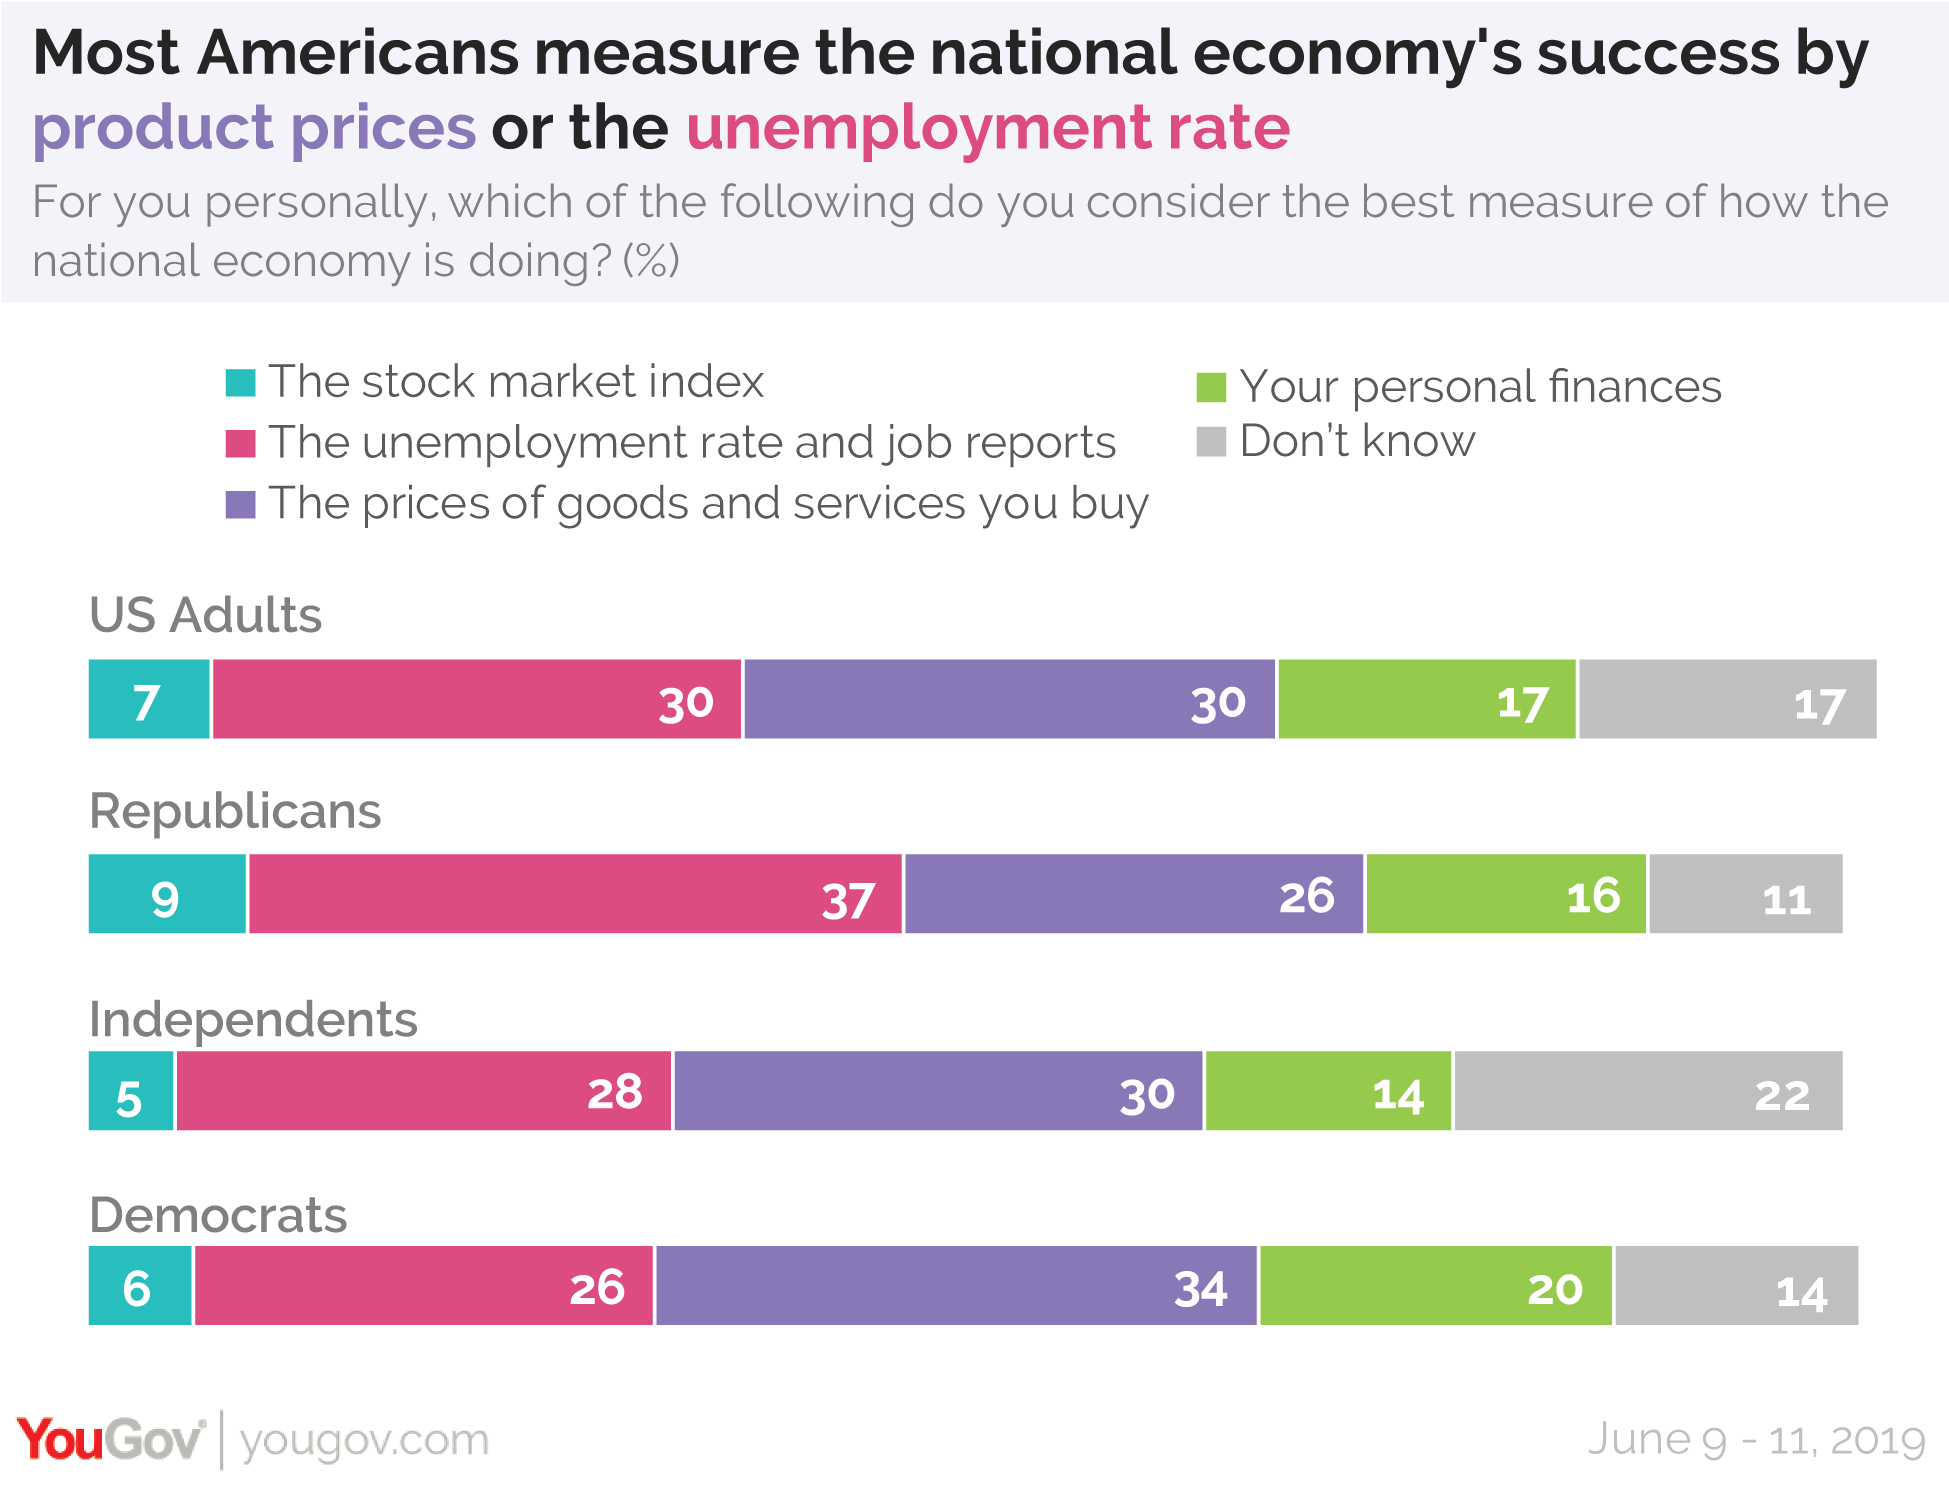 Most Americans measure the national economy's success by product prices or the unemployment rate